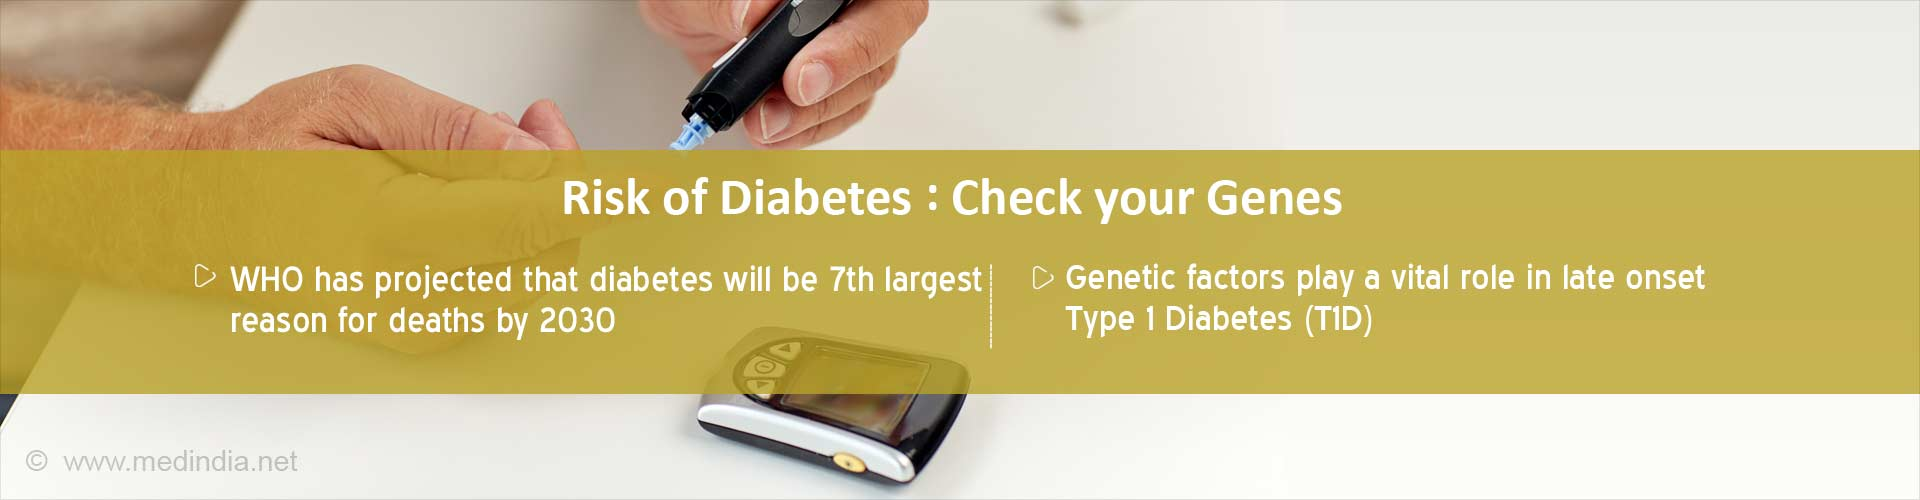 Risk of diabetes: Check you genes